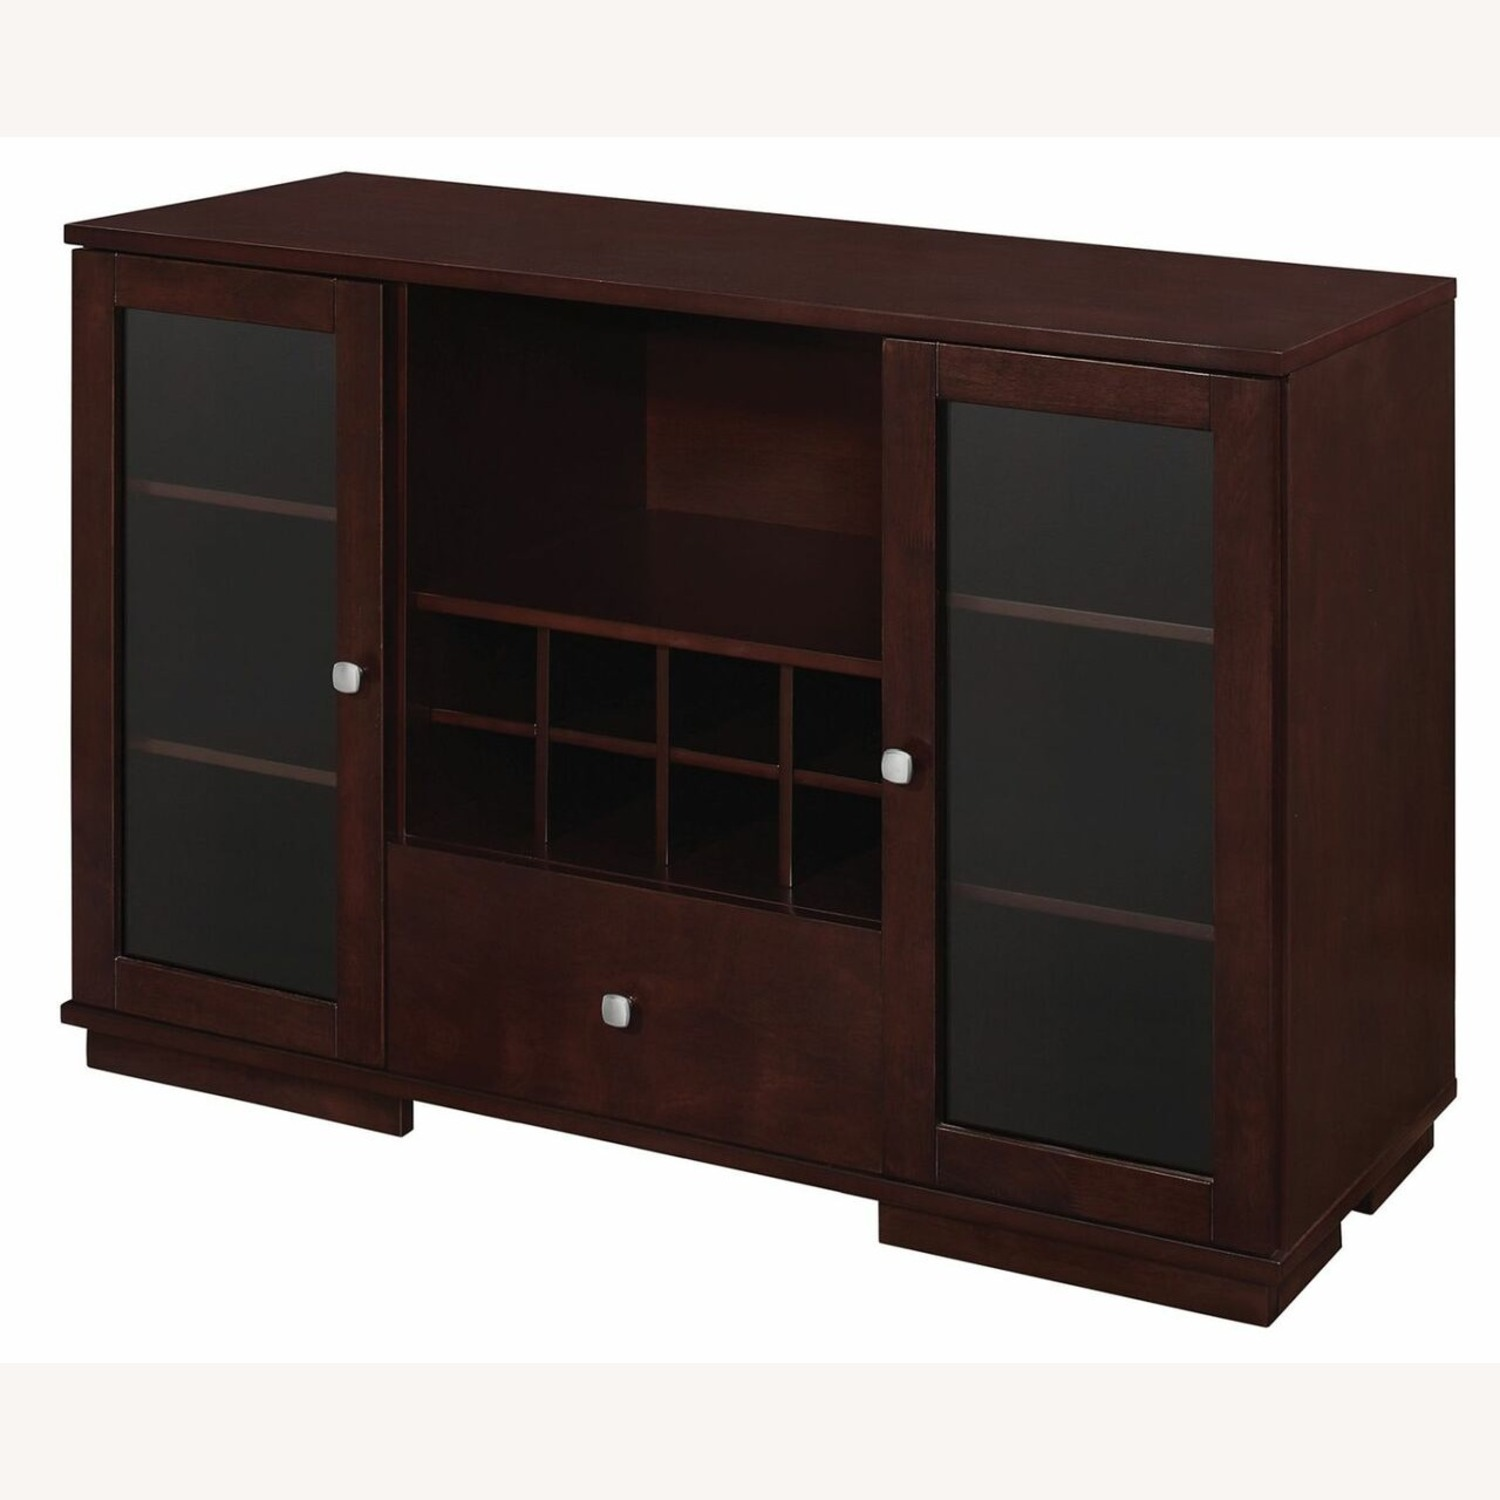 Server In Cappuccino Finish W/ Built-In Wine Rack - image-2